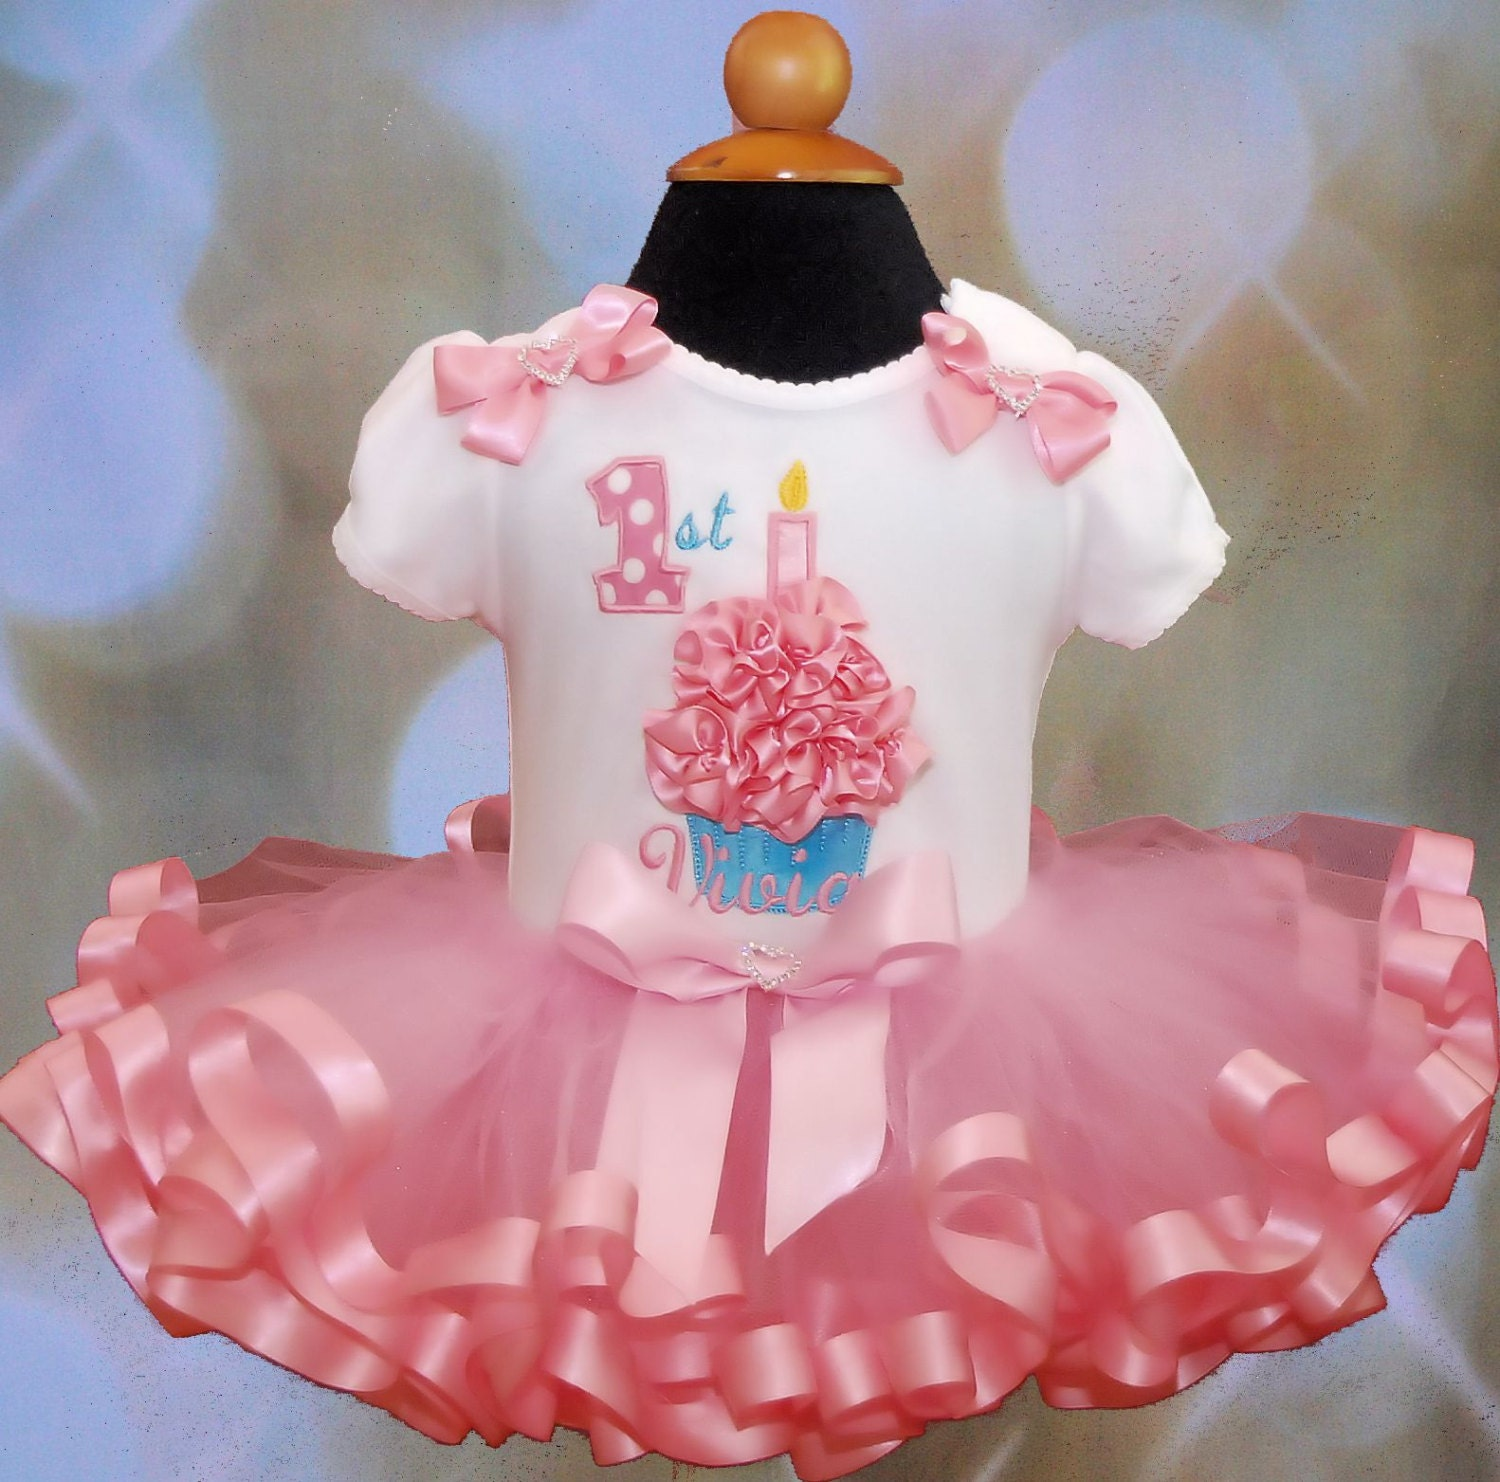 3D Cupcake 1st Birthday girl Outfit 1st birthday tutu dress baby girls' clothing ribbon trim tutu outfit baby girl birthday ribbon cupcake